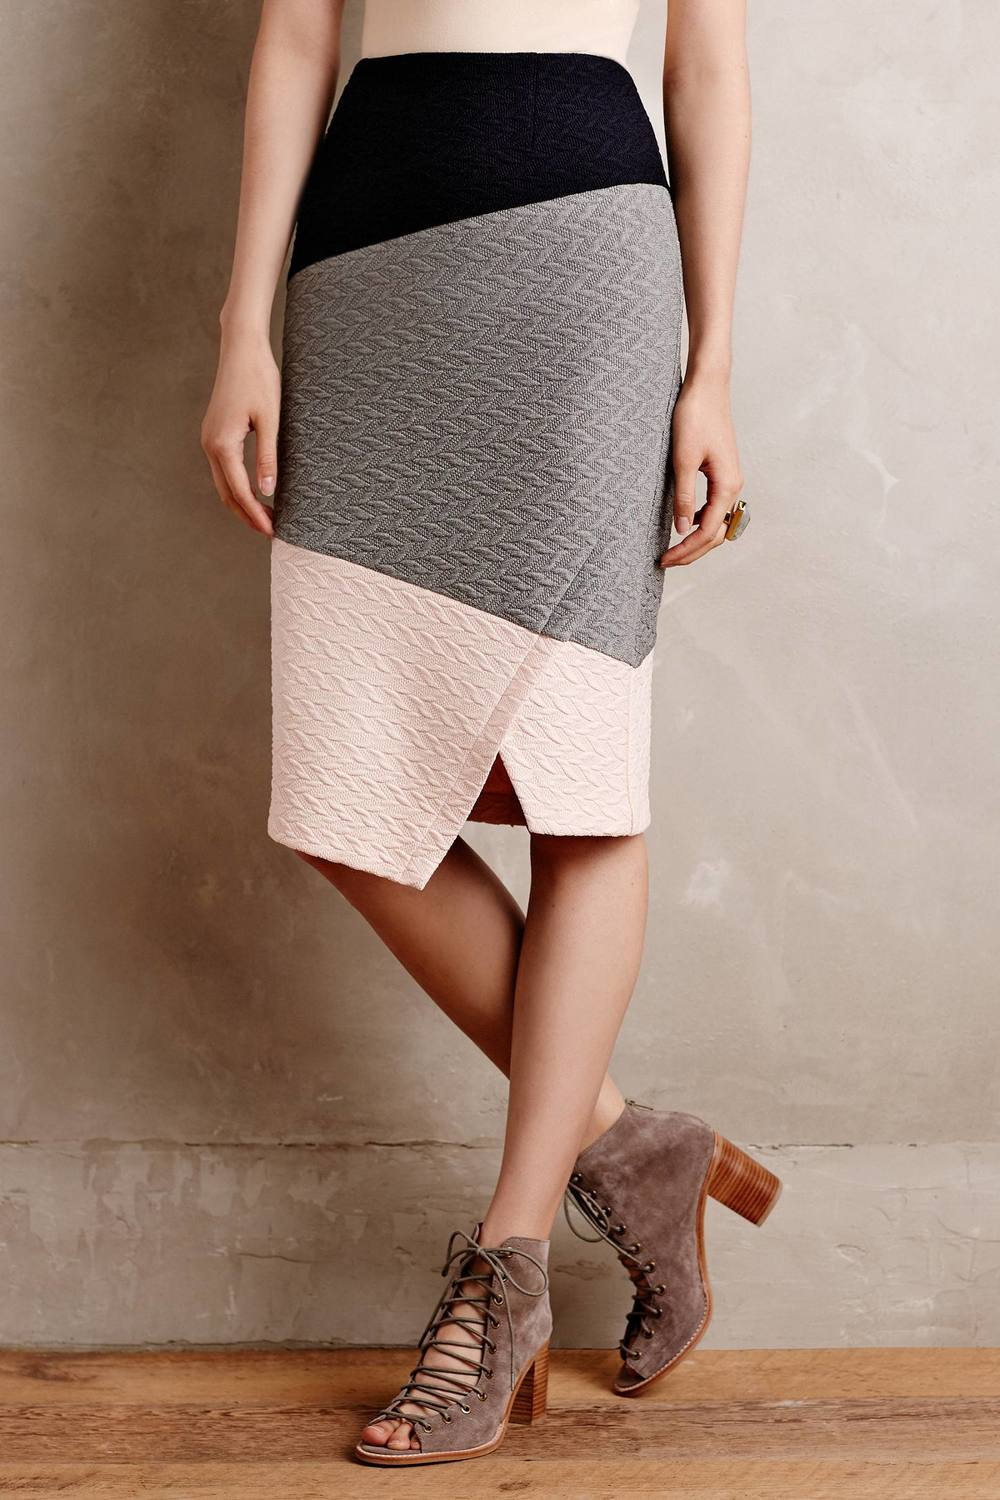 Colorblocked Pencil Skirt. Available in two color options. Anthropology. $98.